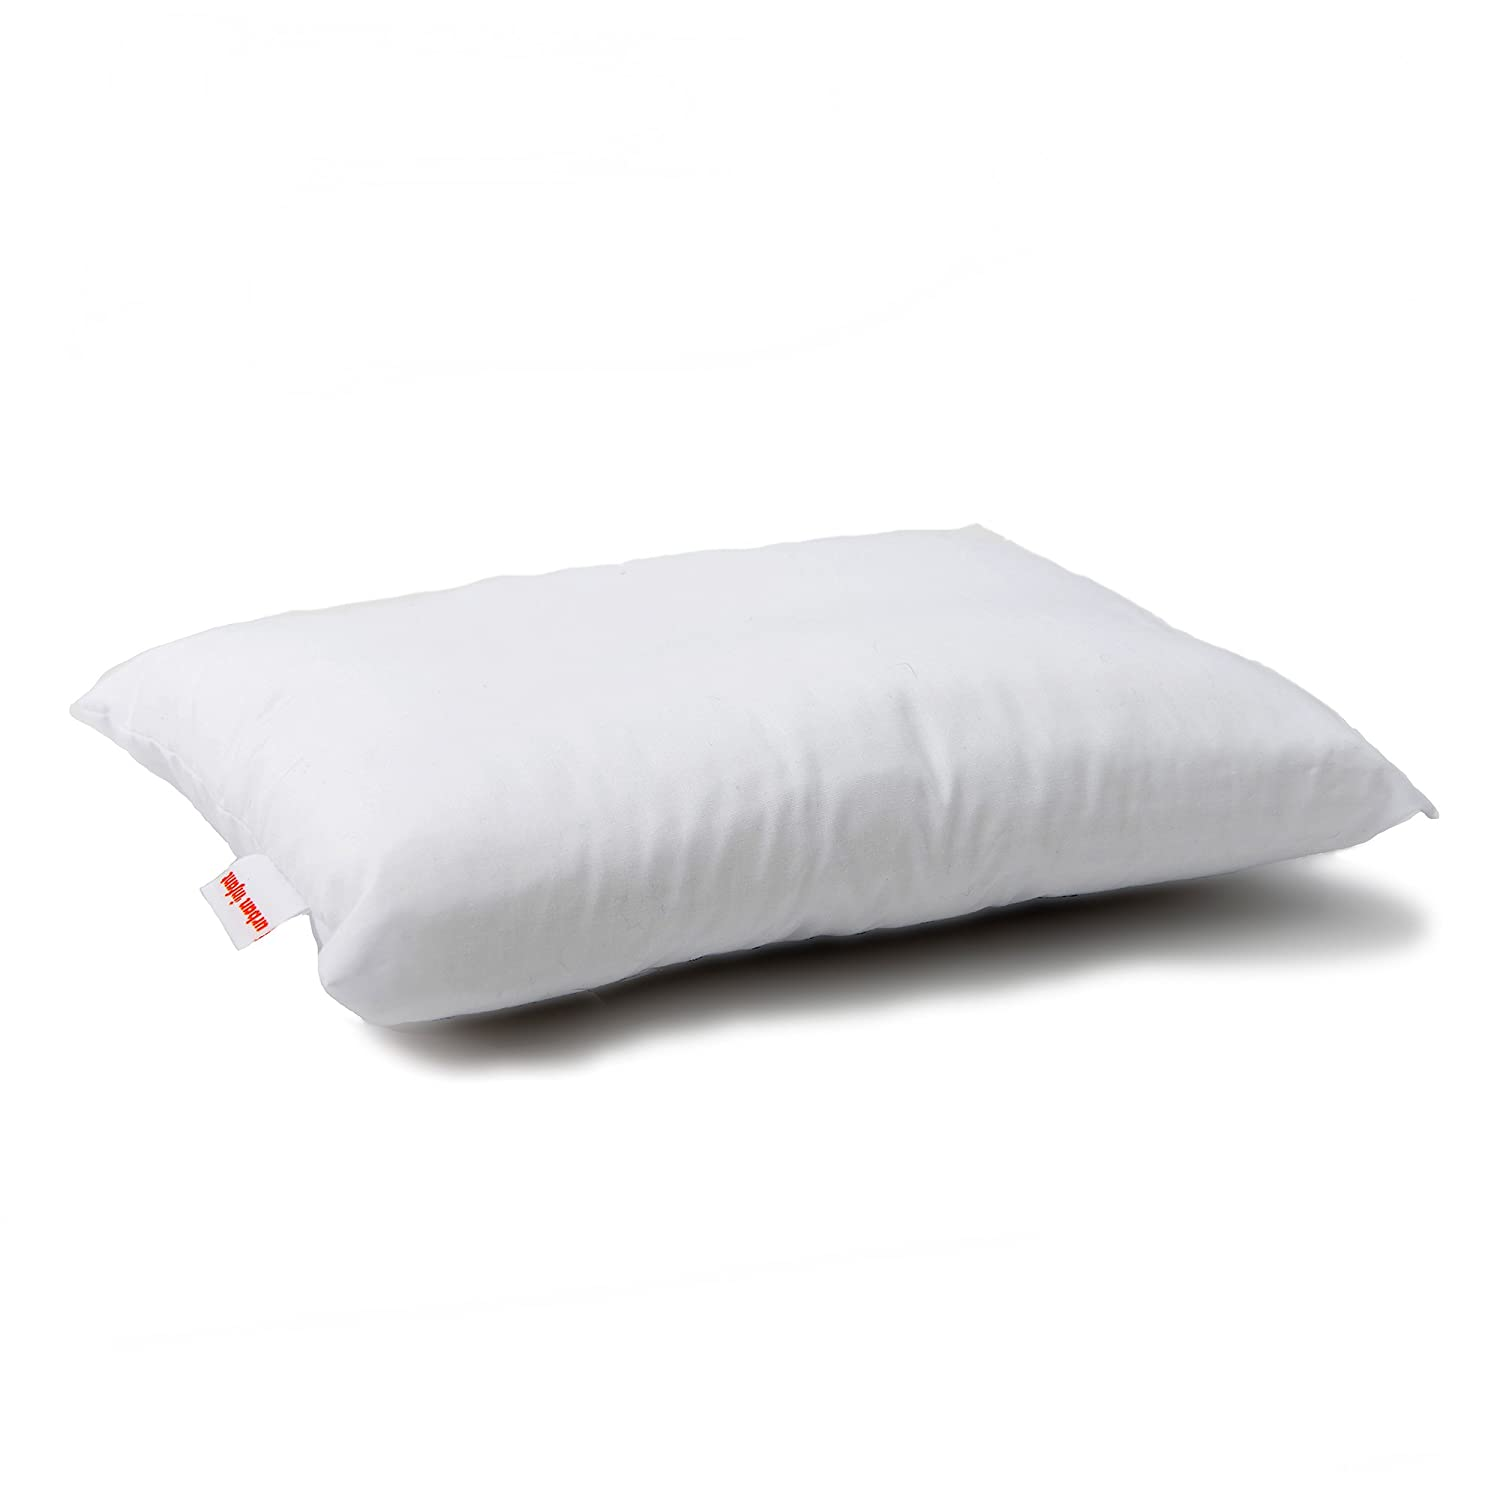 Urban Infant 1095 Tot Cot Backup/Replacement Pillow, White